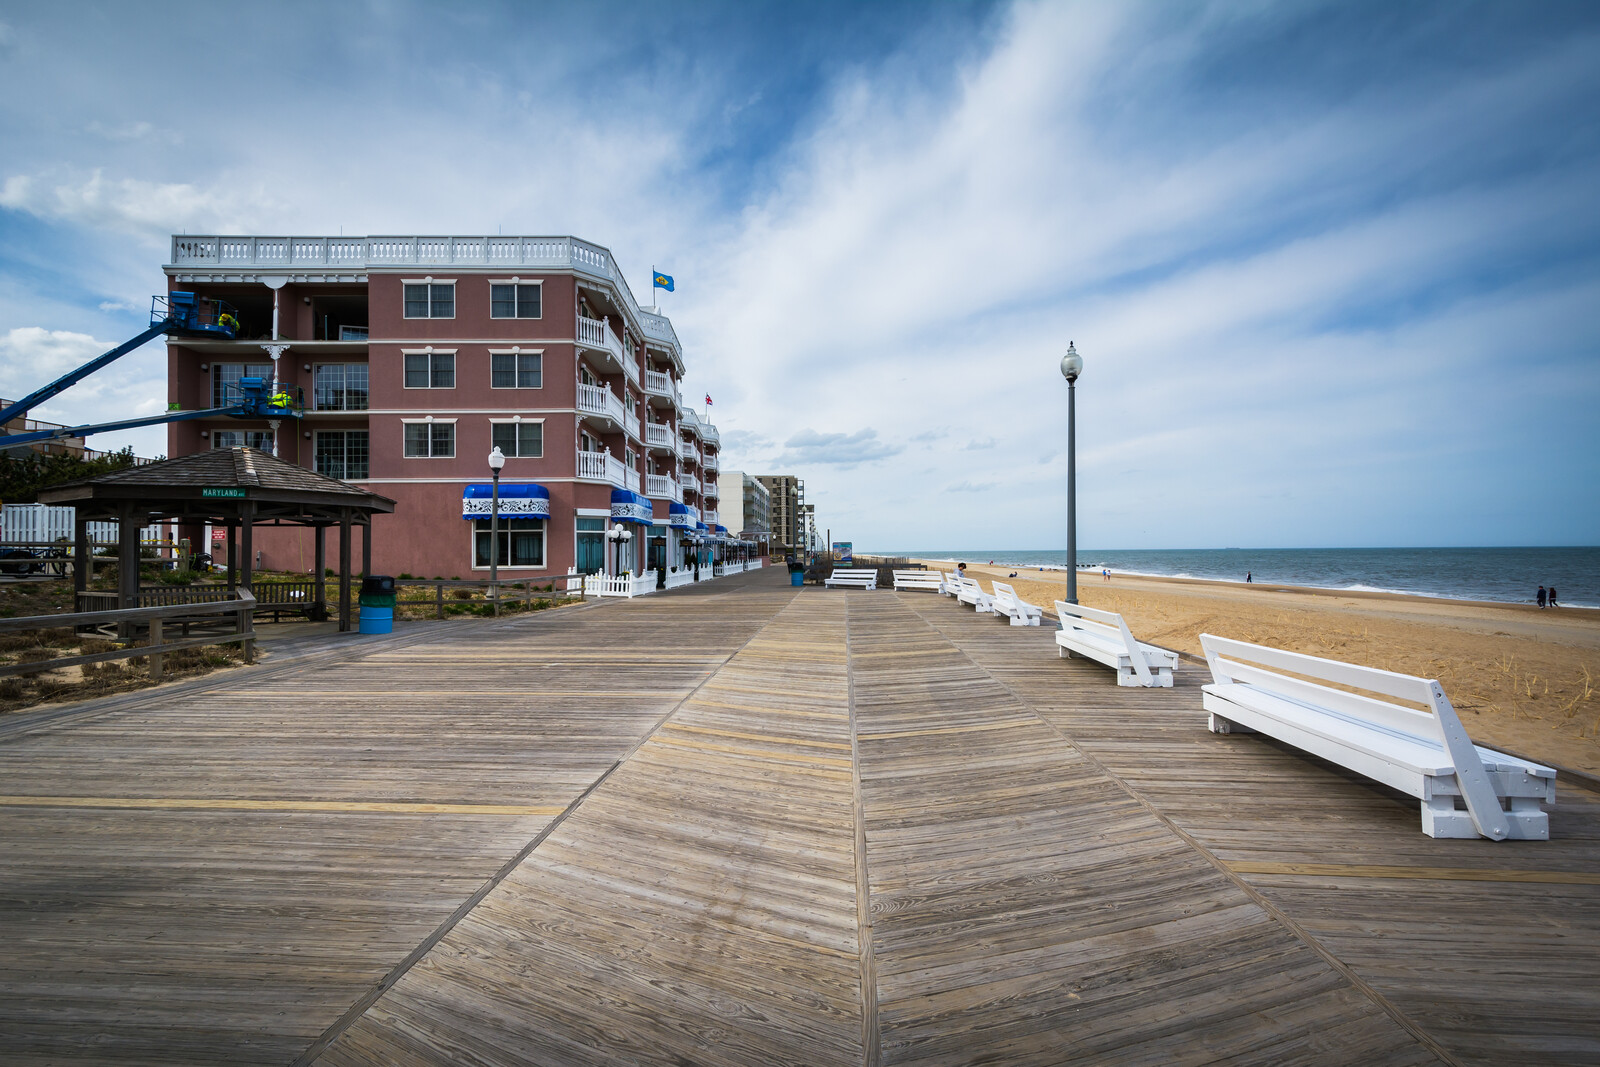 Boardwalk in Rehoboth Beach with a hotel on the left and white benches lining the boardwalk and beach and ocean on the right during offseason, beautiful blue skies.